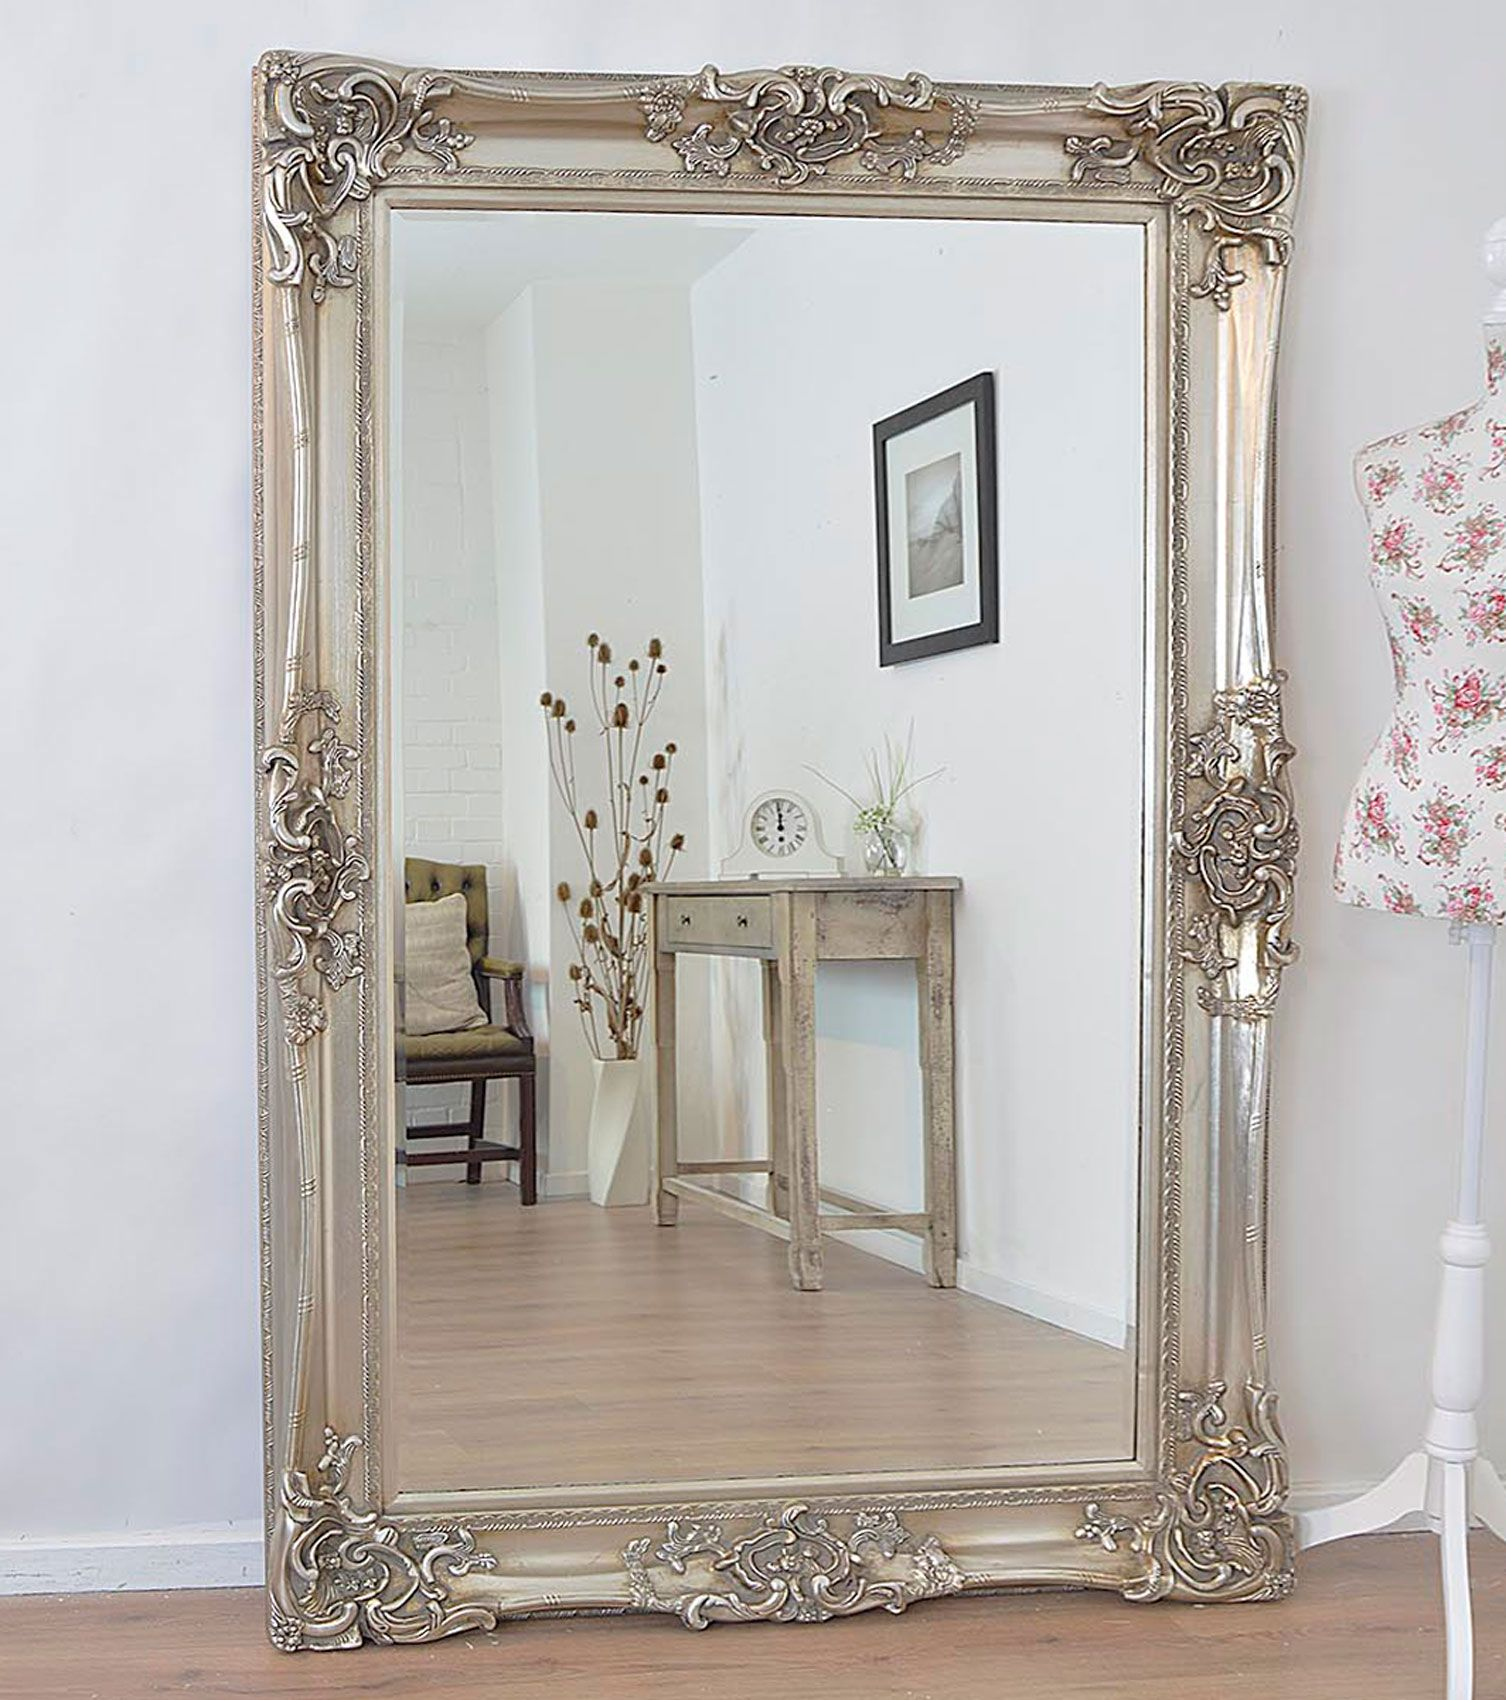 Antique Design Ornate Wall Mirror will make a beautiful addition to any room in the house, from ...